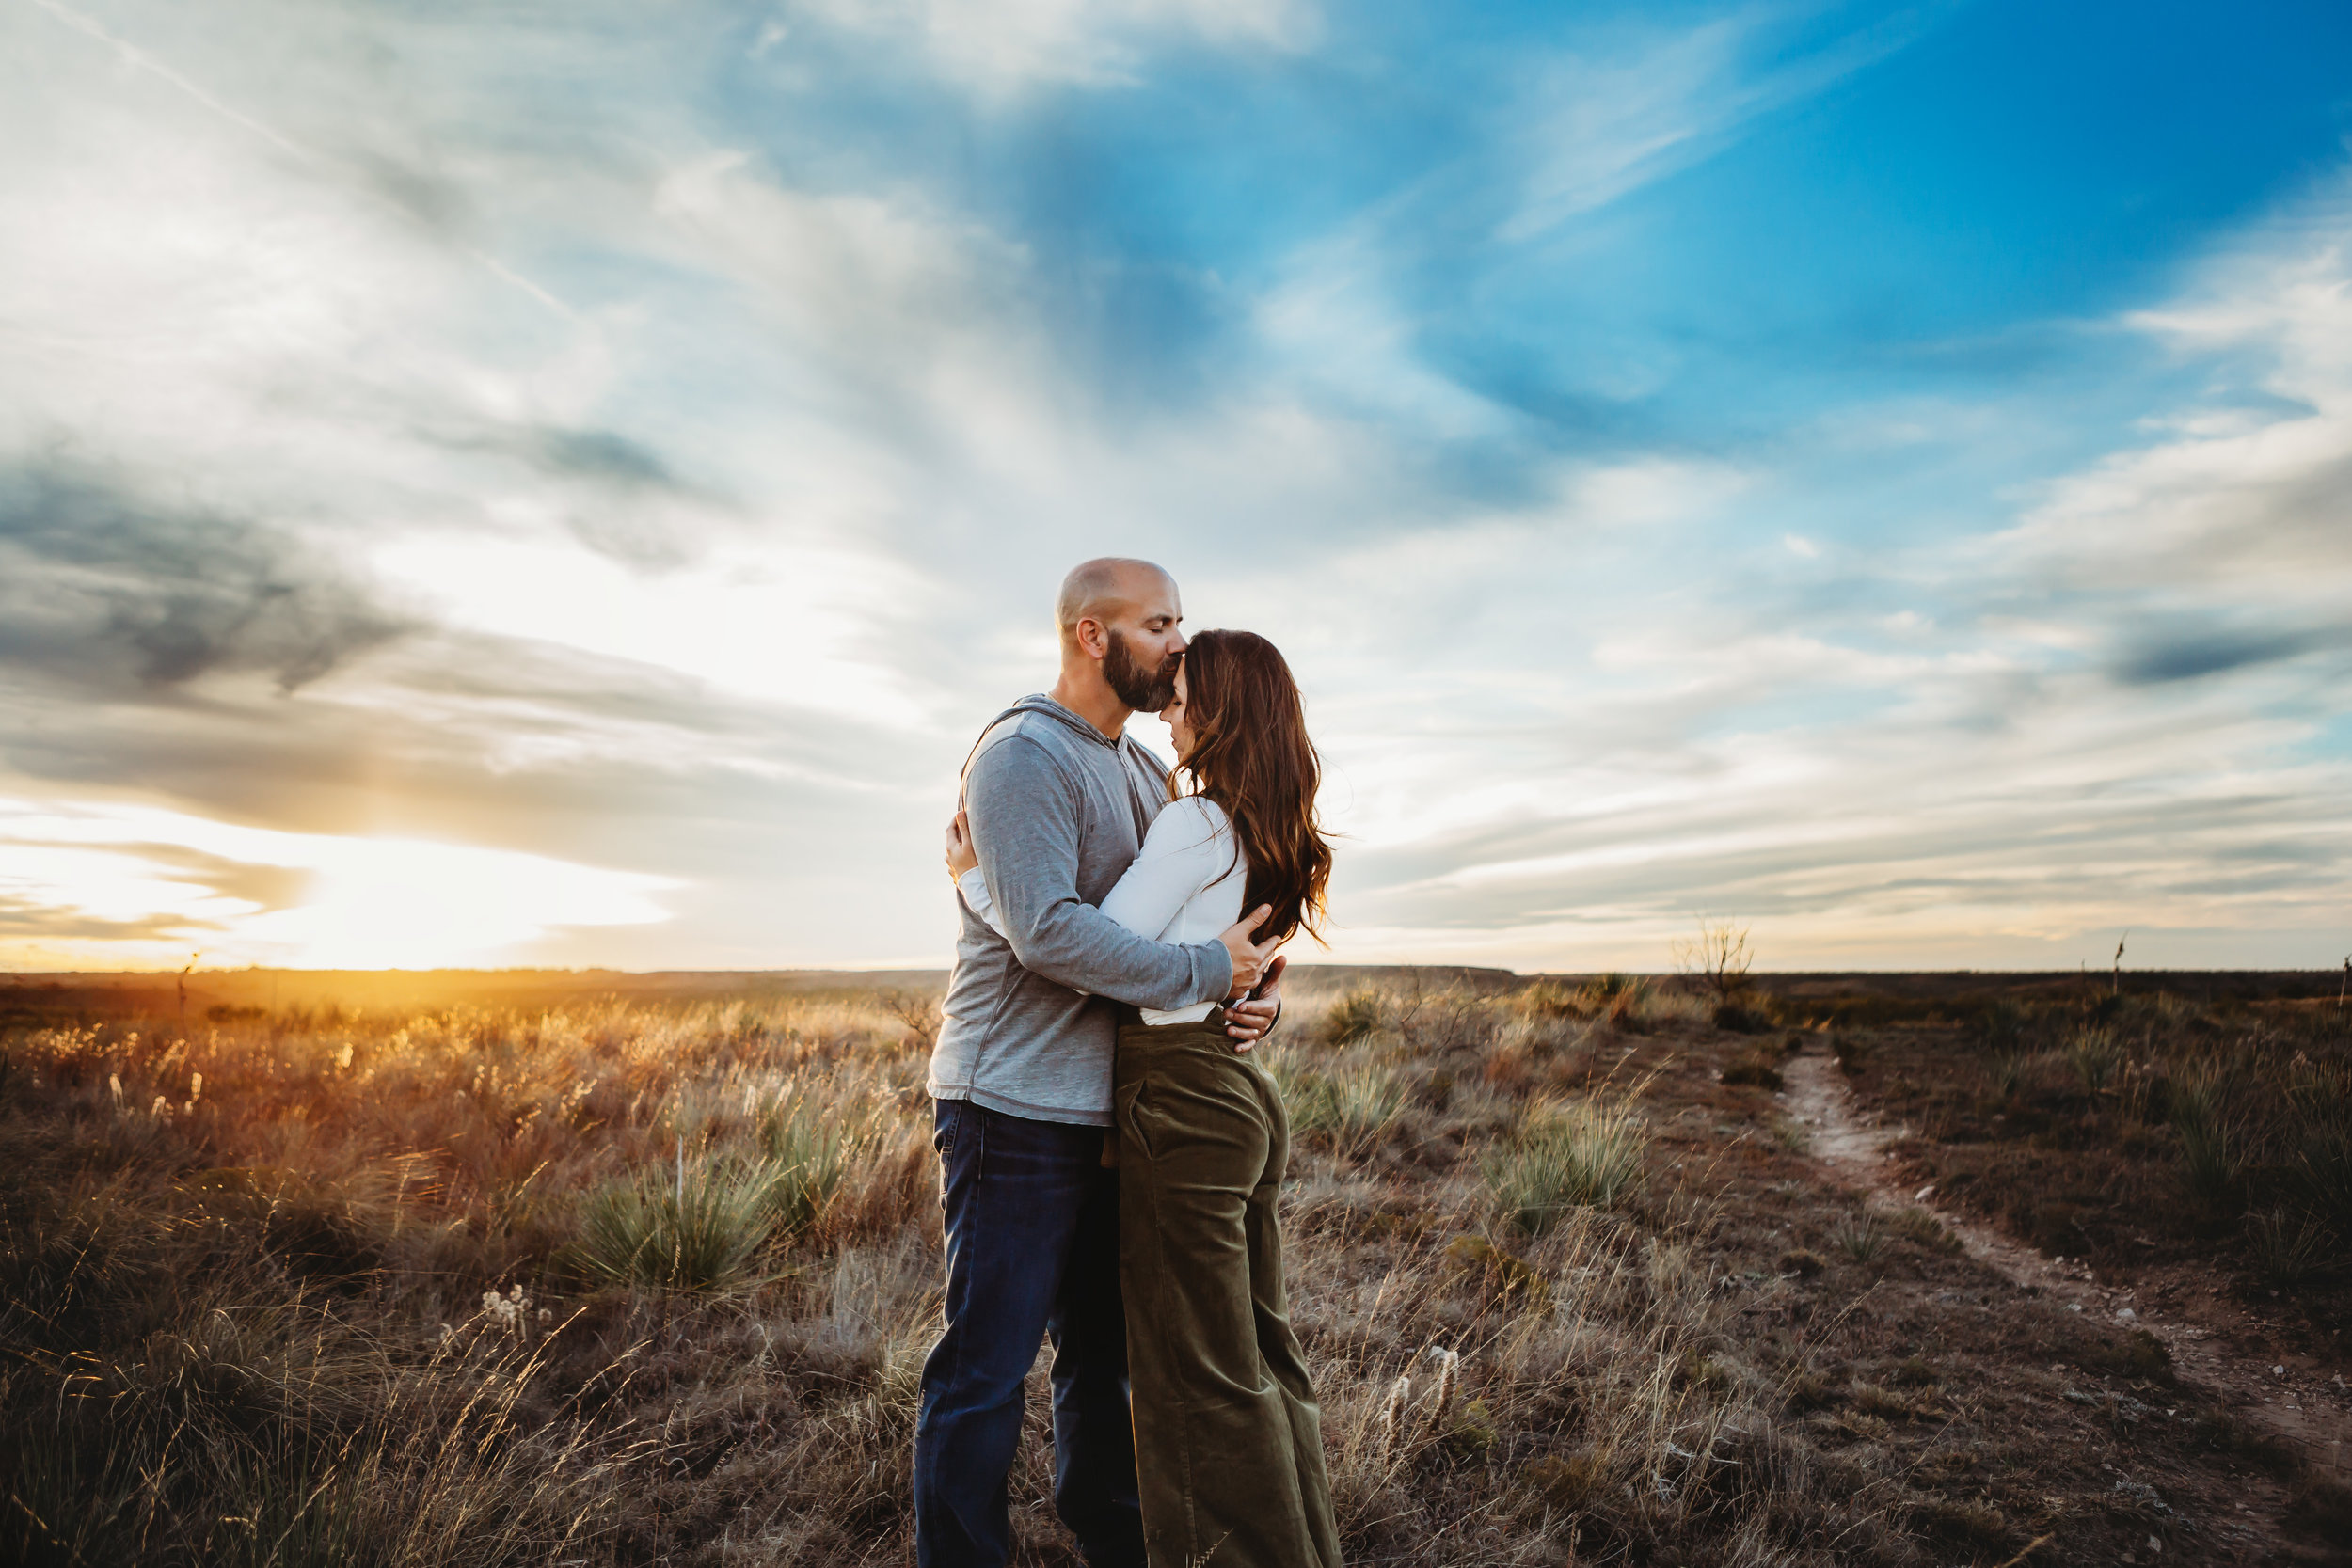 Wide open space behind couple with a kiss on the forehead #tealawardphotography #texaslocationchoice #amarillophotographer #amarillofamilyphotographer #emotionalphotography #engagementphotography #couplesphotography #pickingaphotosessionlocation #whatsimportant #everythingtogether #pickingcolorsforphotos #location #photosessionlocation